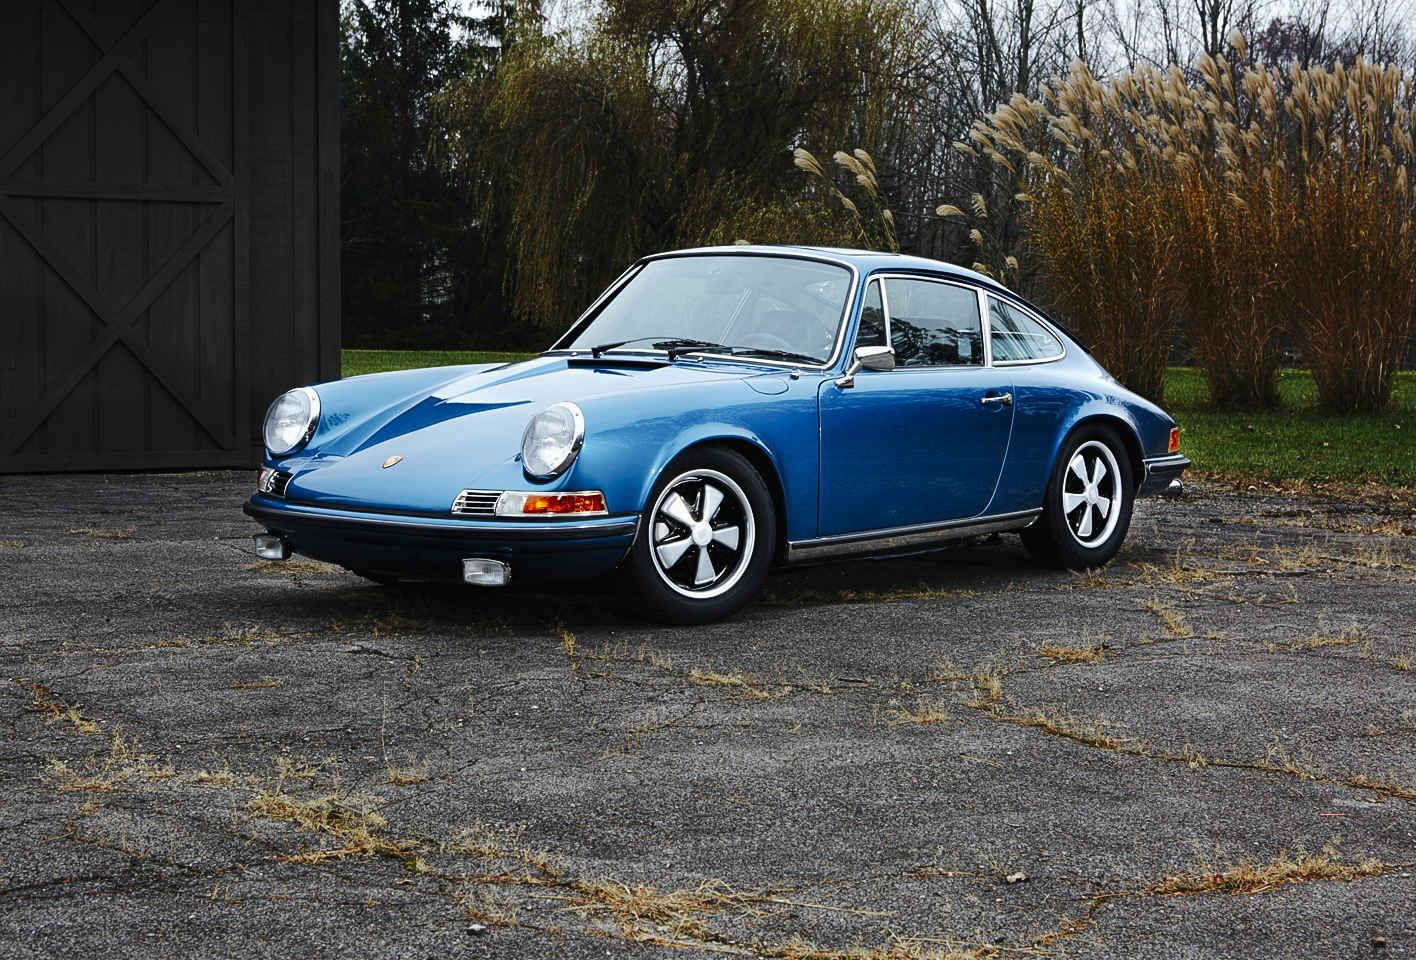 Classic Cars For Sale On eBay Motors, The Best From Porsche, Pontiac ...